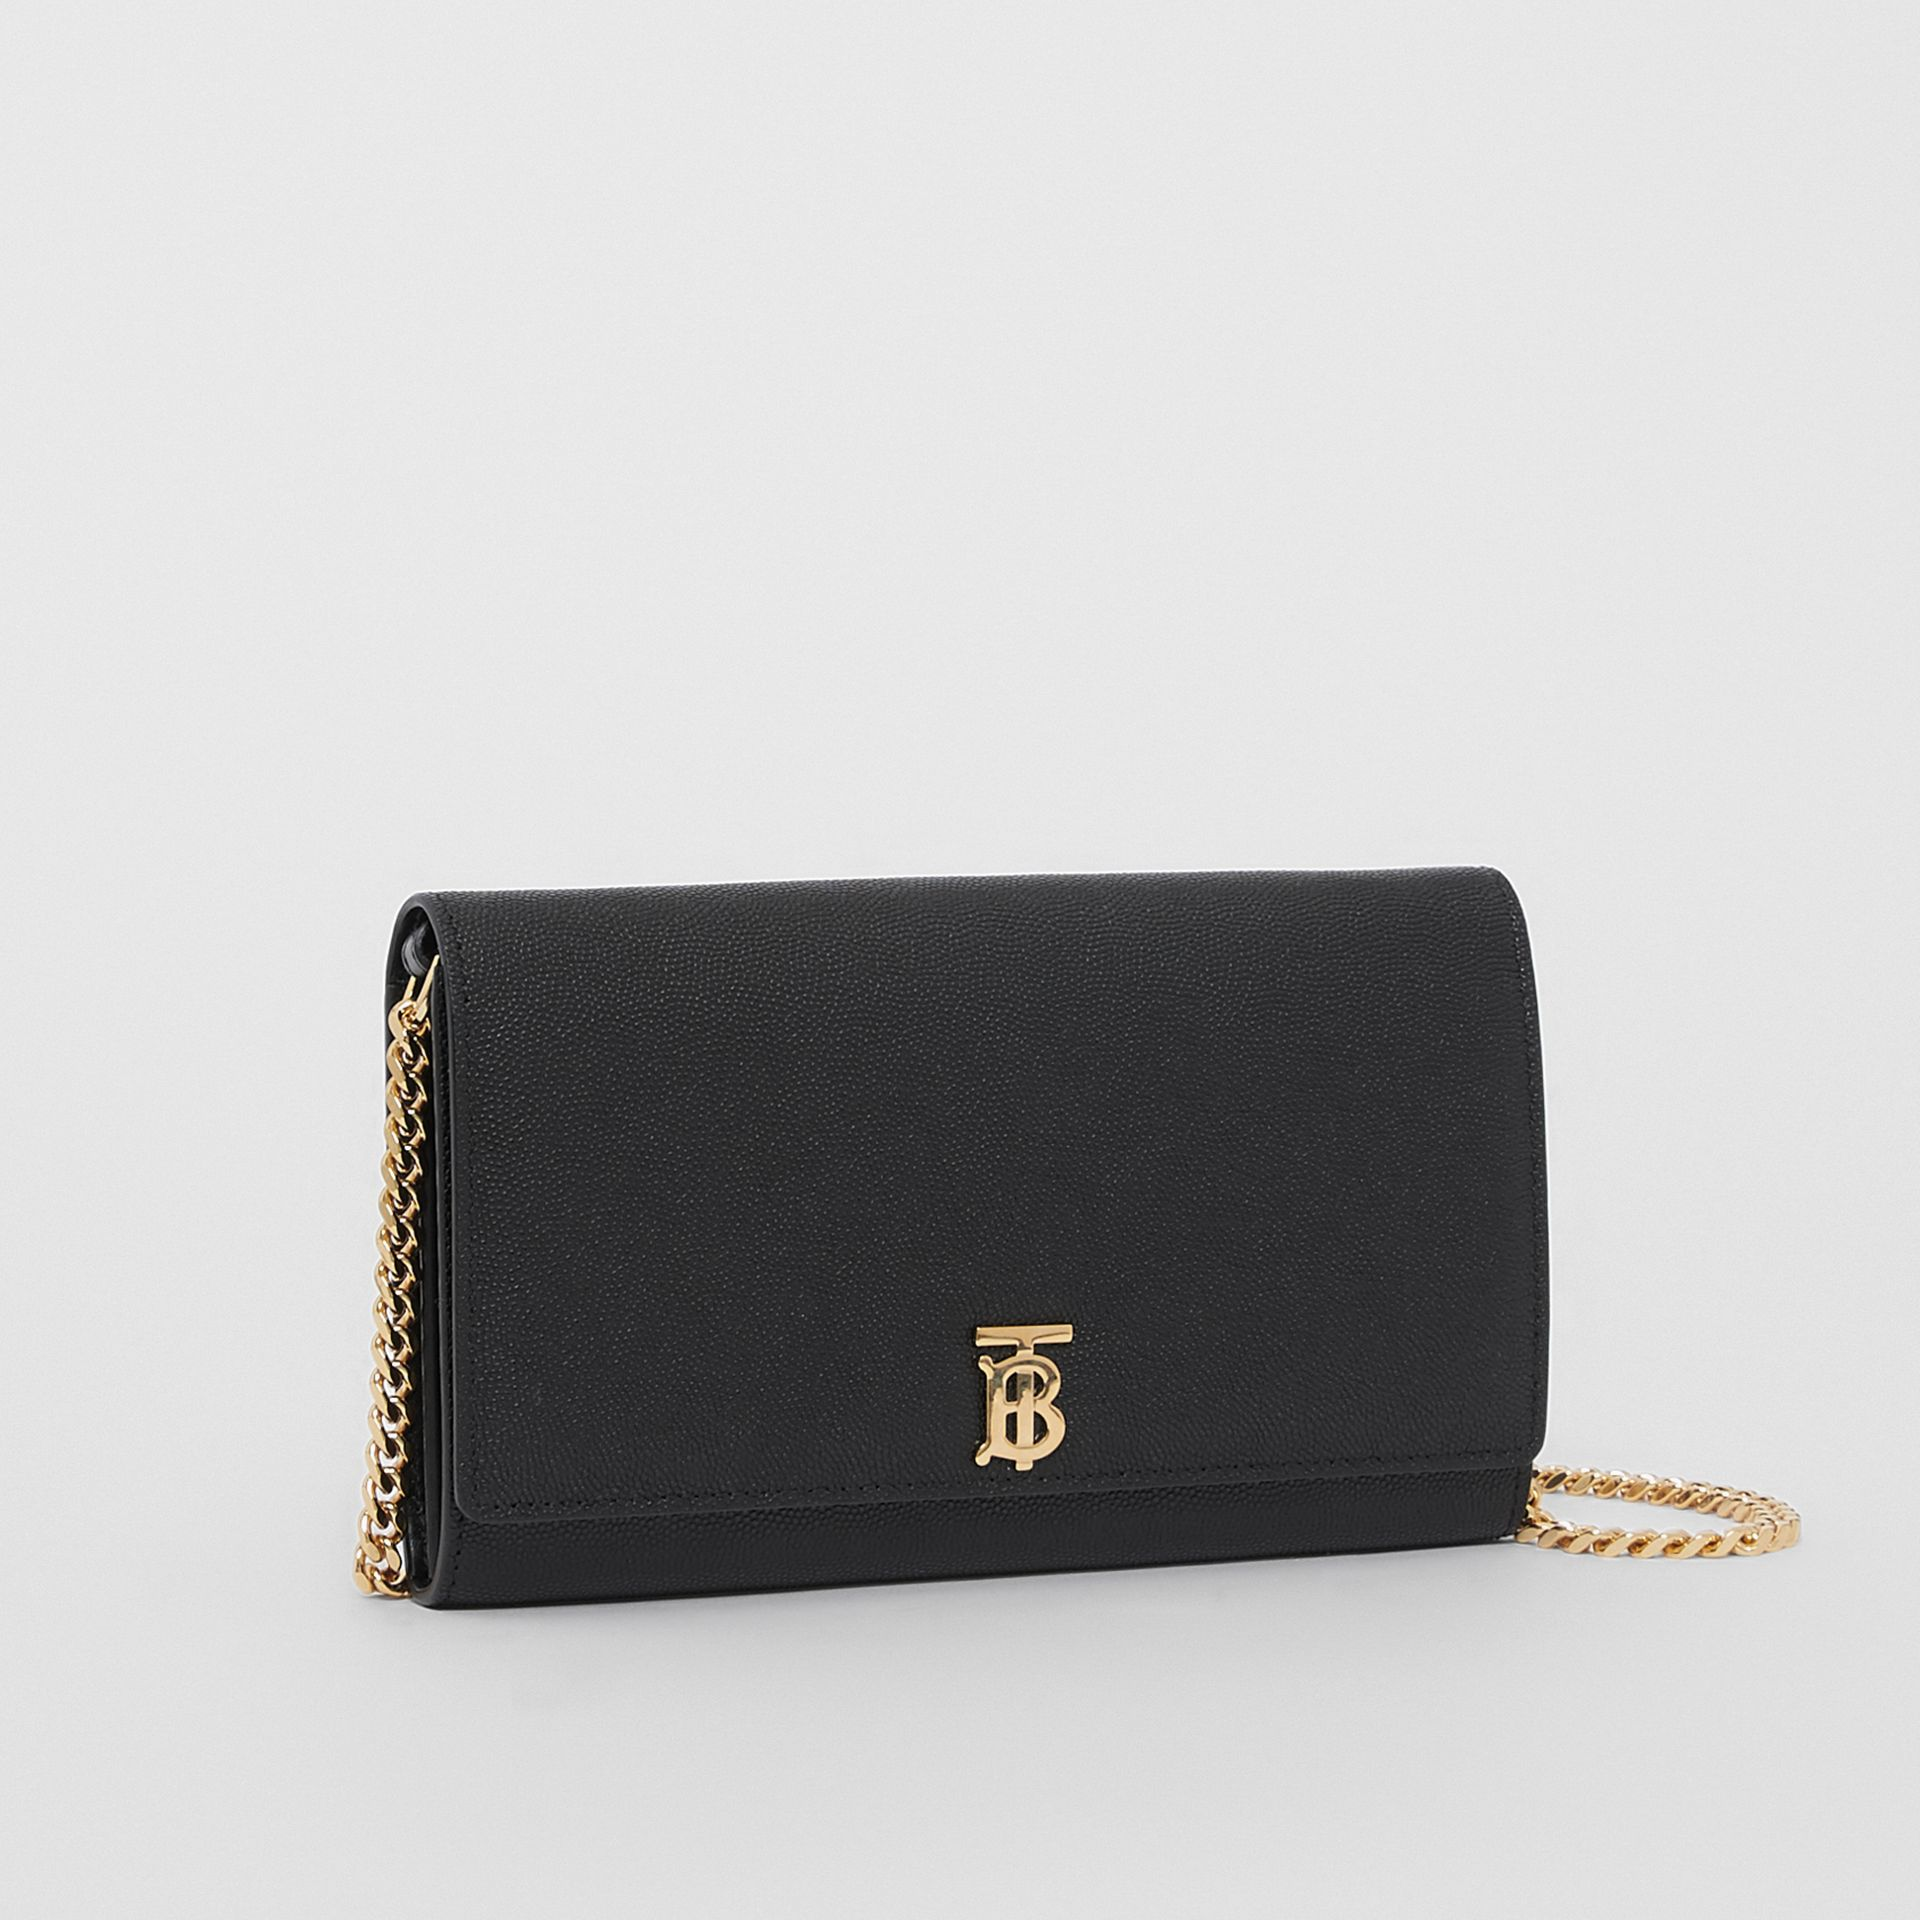 Monogram Motif Leather Wallet with Detachable Strap in Black - Women | Burberry United Kingdom - gallery image 6